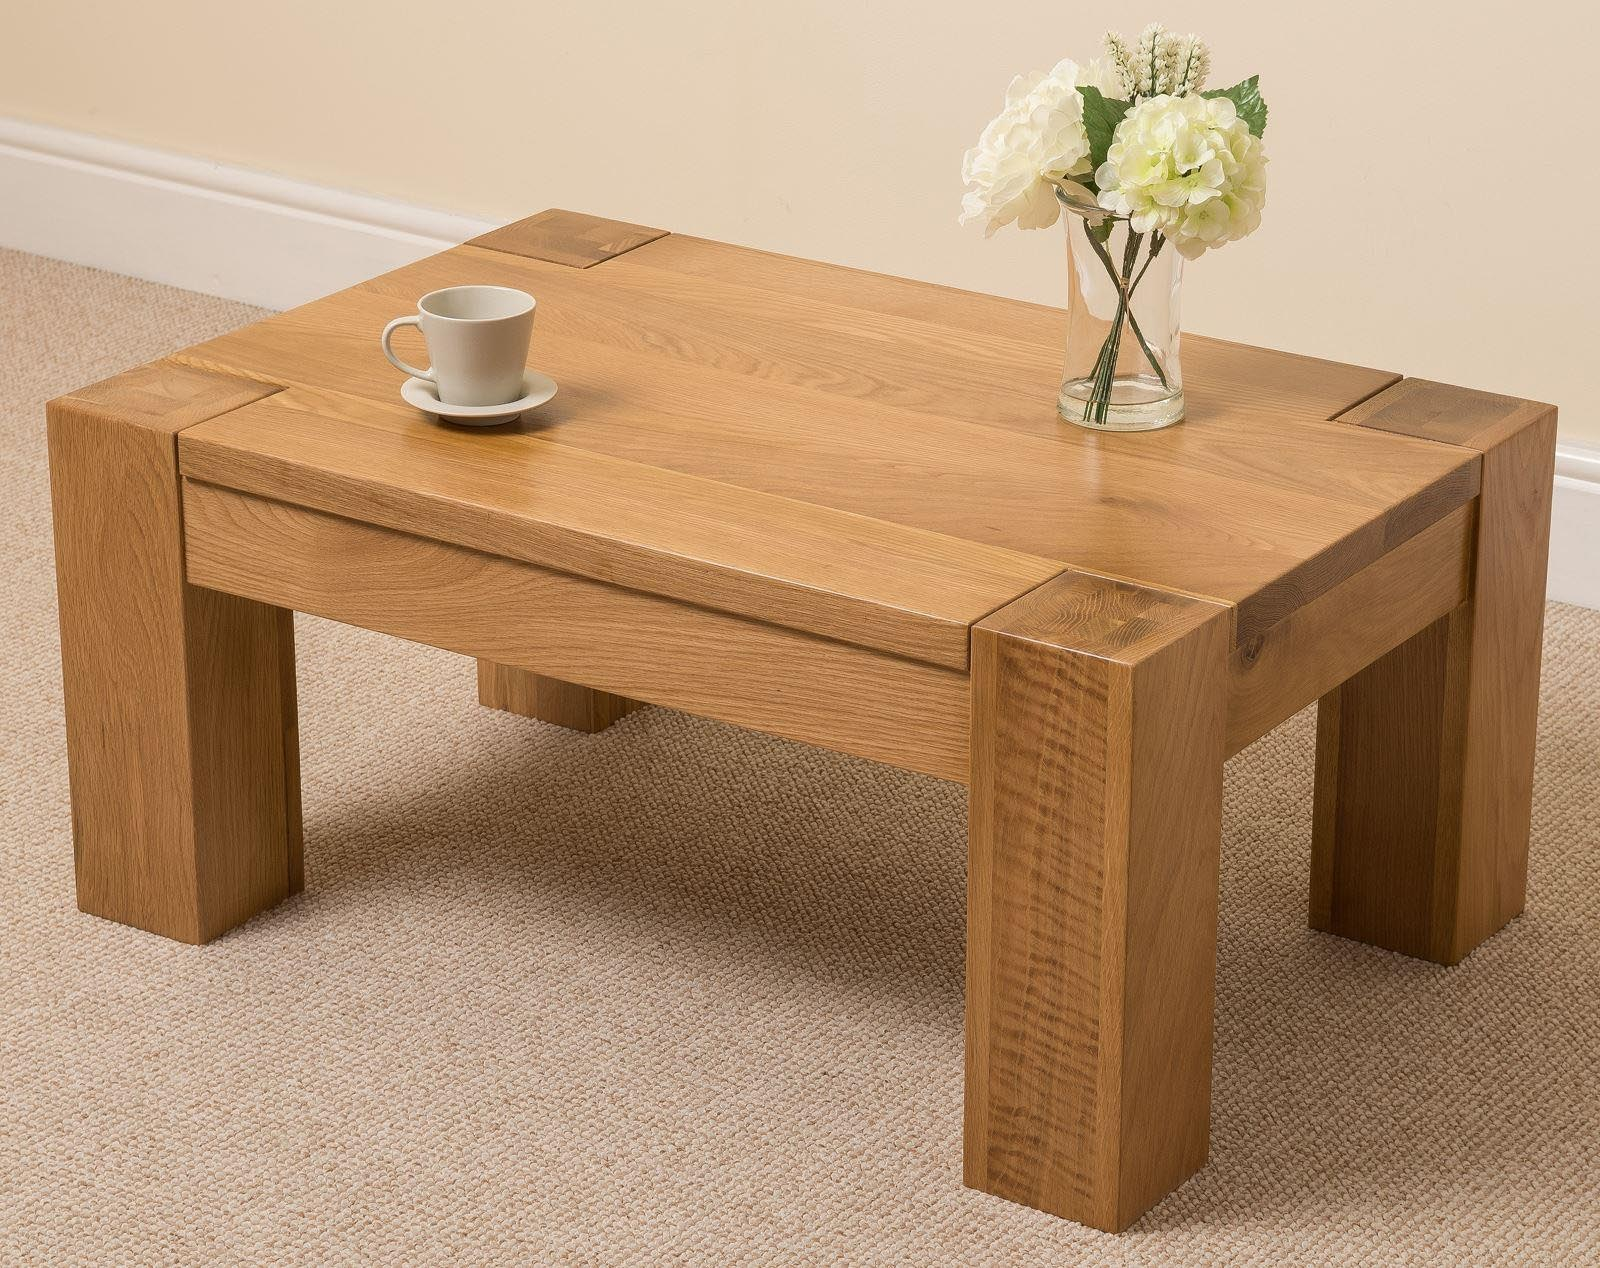 Pine wood coffee table coffee table design ideas Espresso coffee table